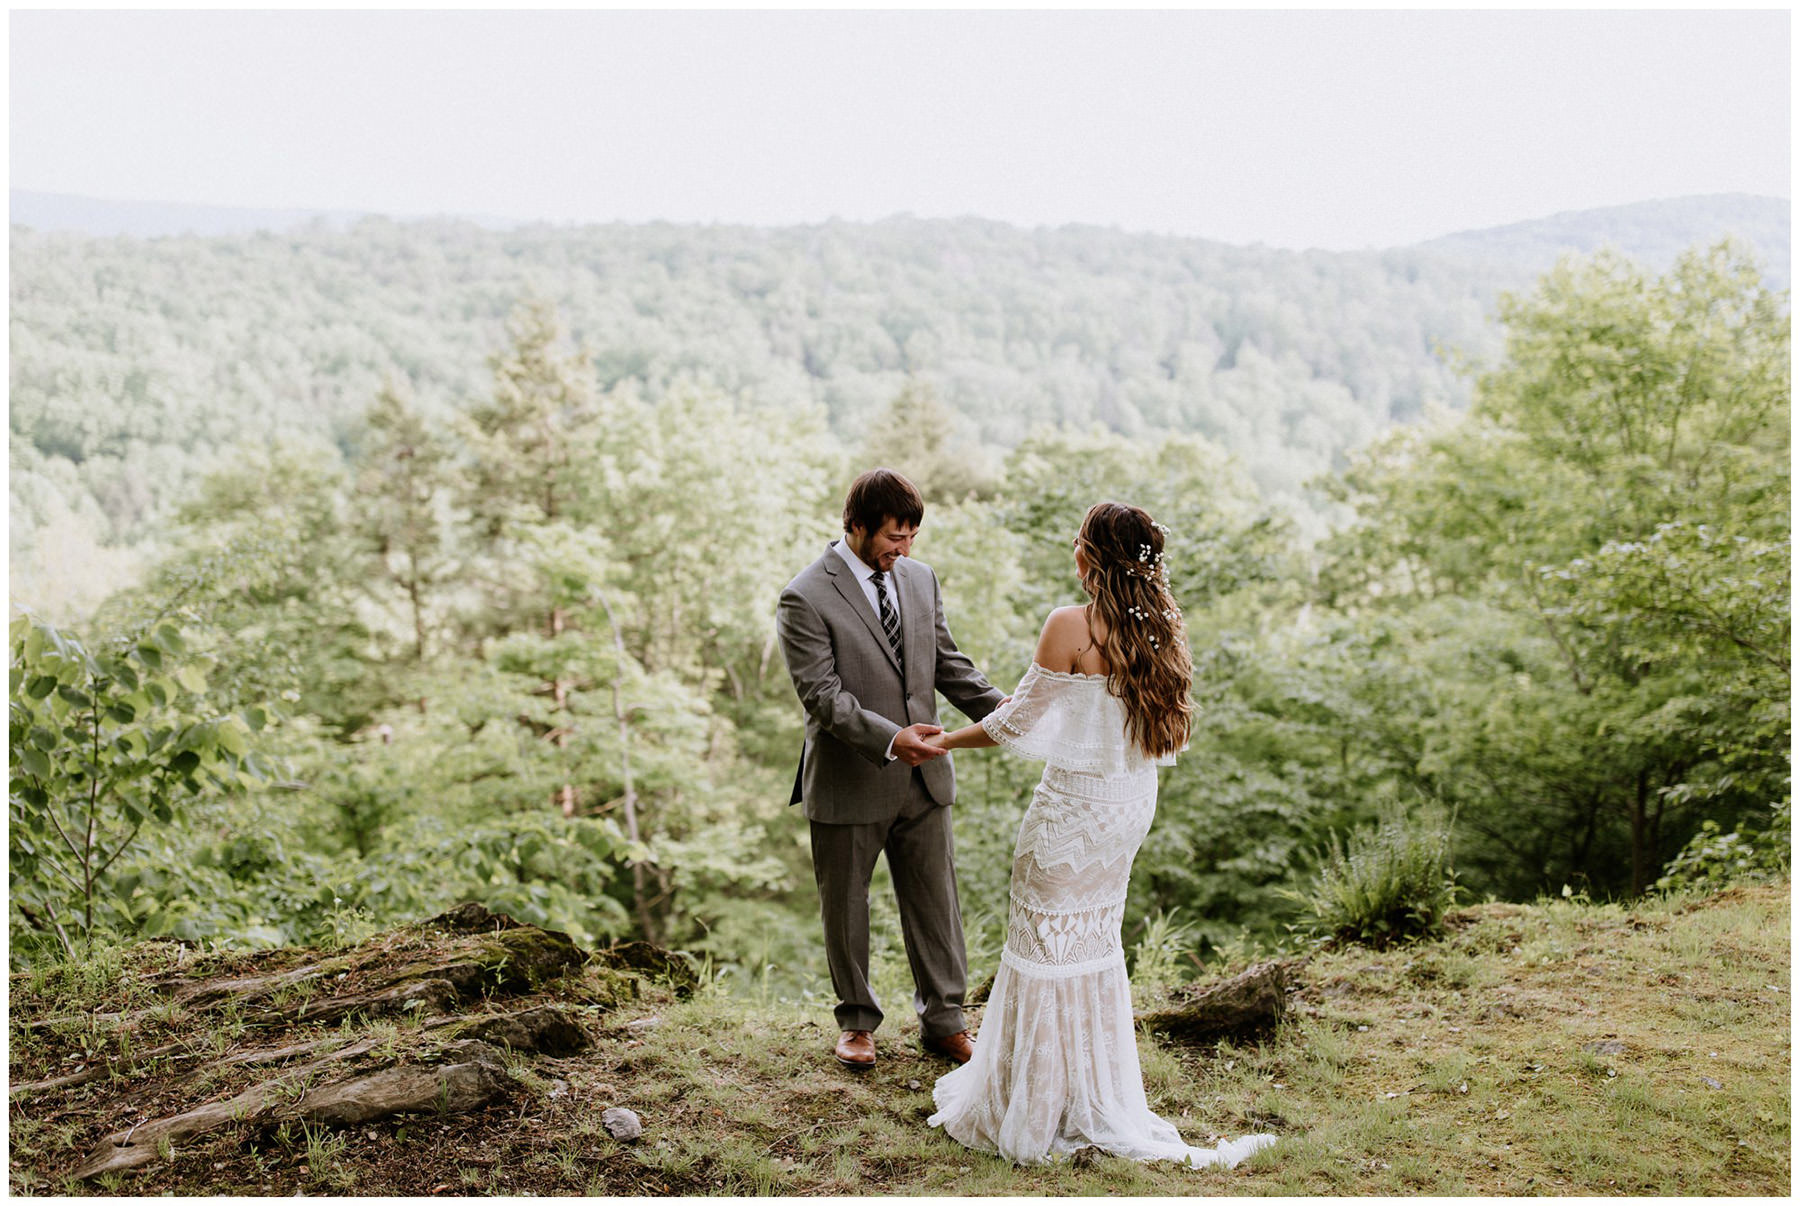 A Beautiful & Intimate Elopement in Pennsylvania